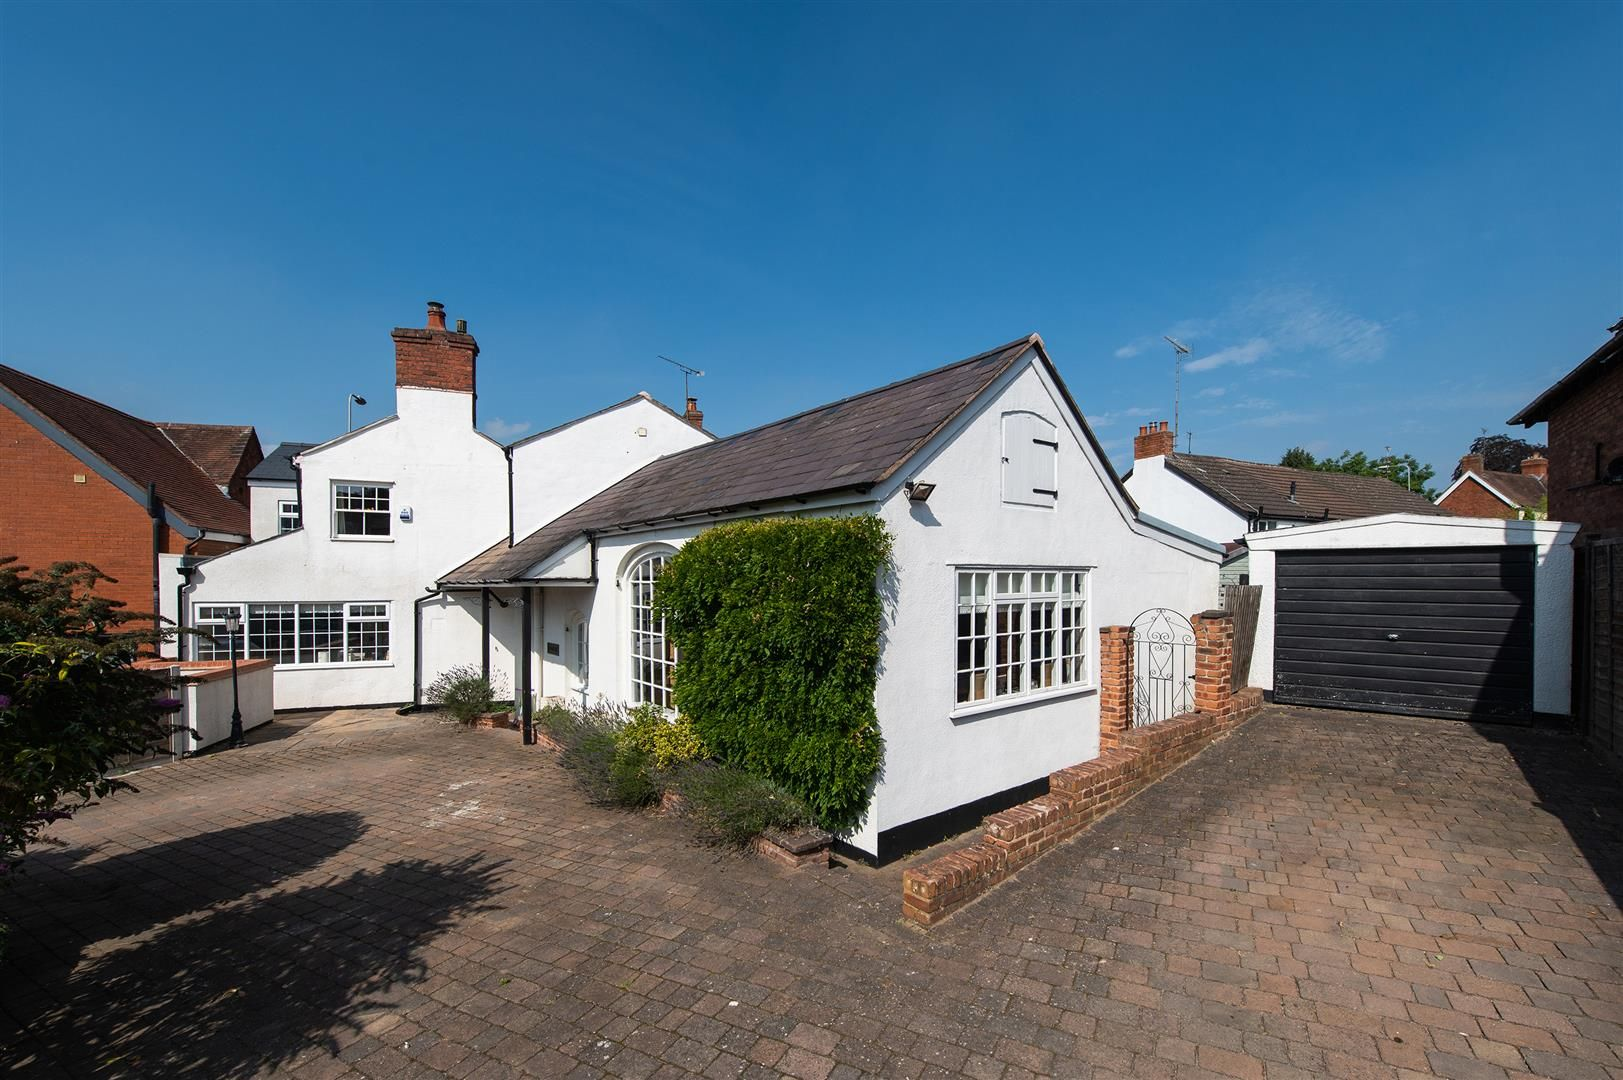 4 bed detached for sale in Blakedown 5